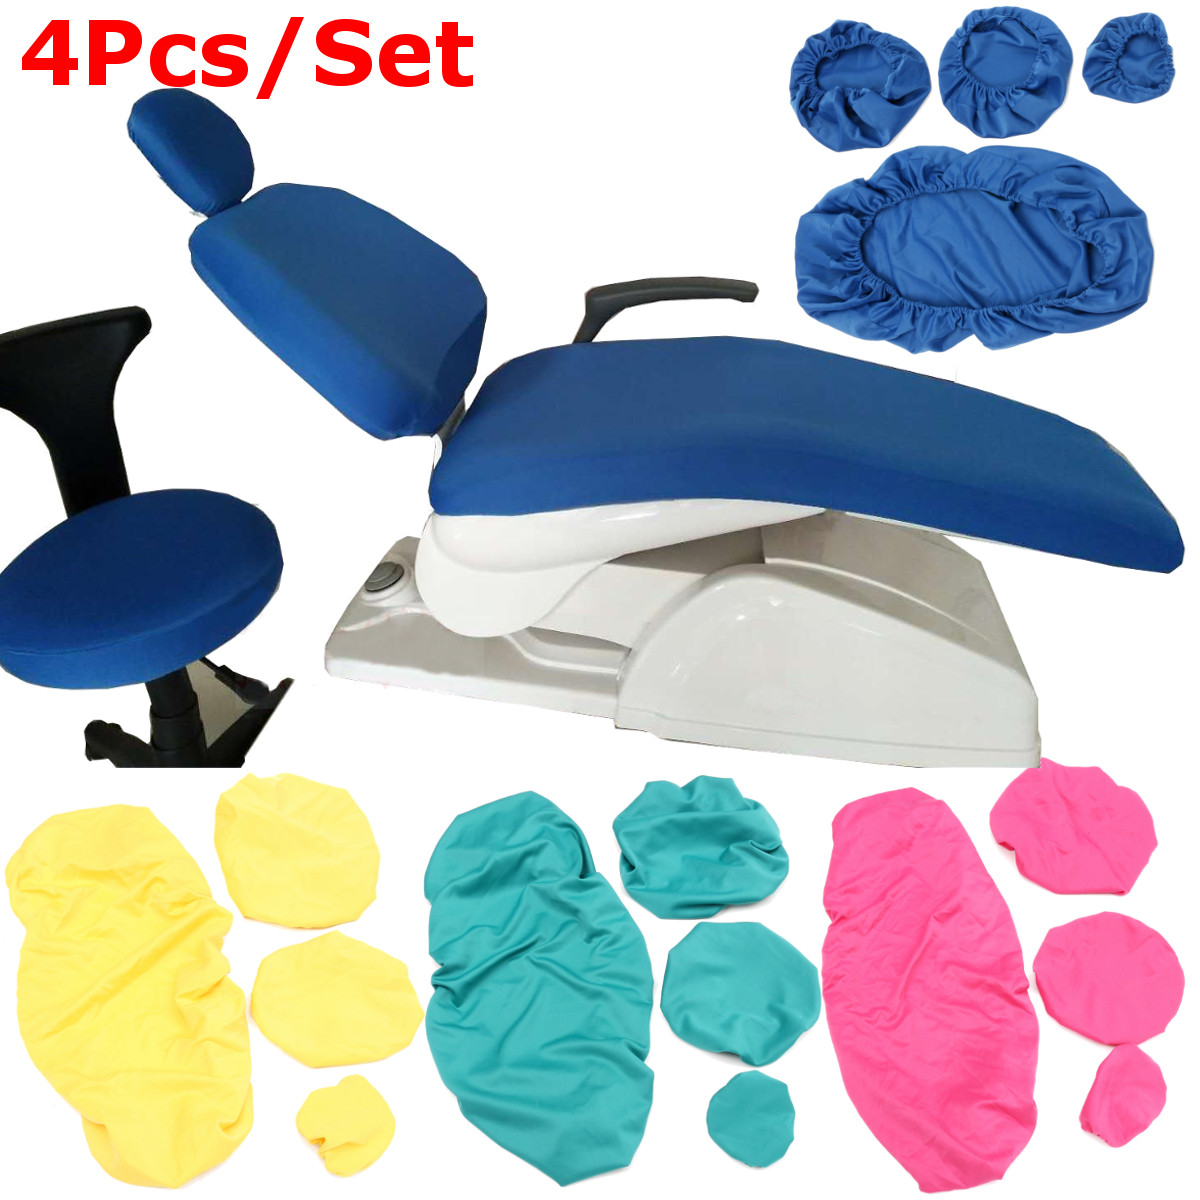 4Pcs/Set Protective Dental Unit Covers Sleeves Cushion Elastic Case Cloth Seat Headrest Protector Kit Dentist Stool Accessories